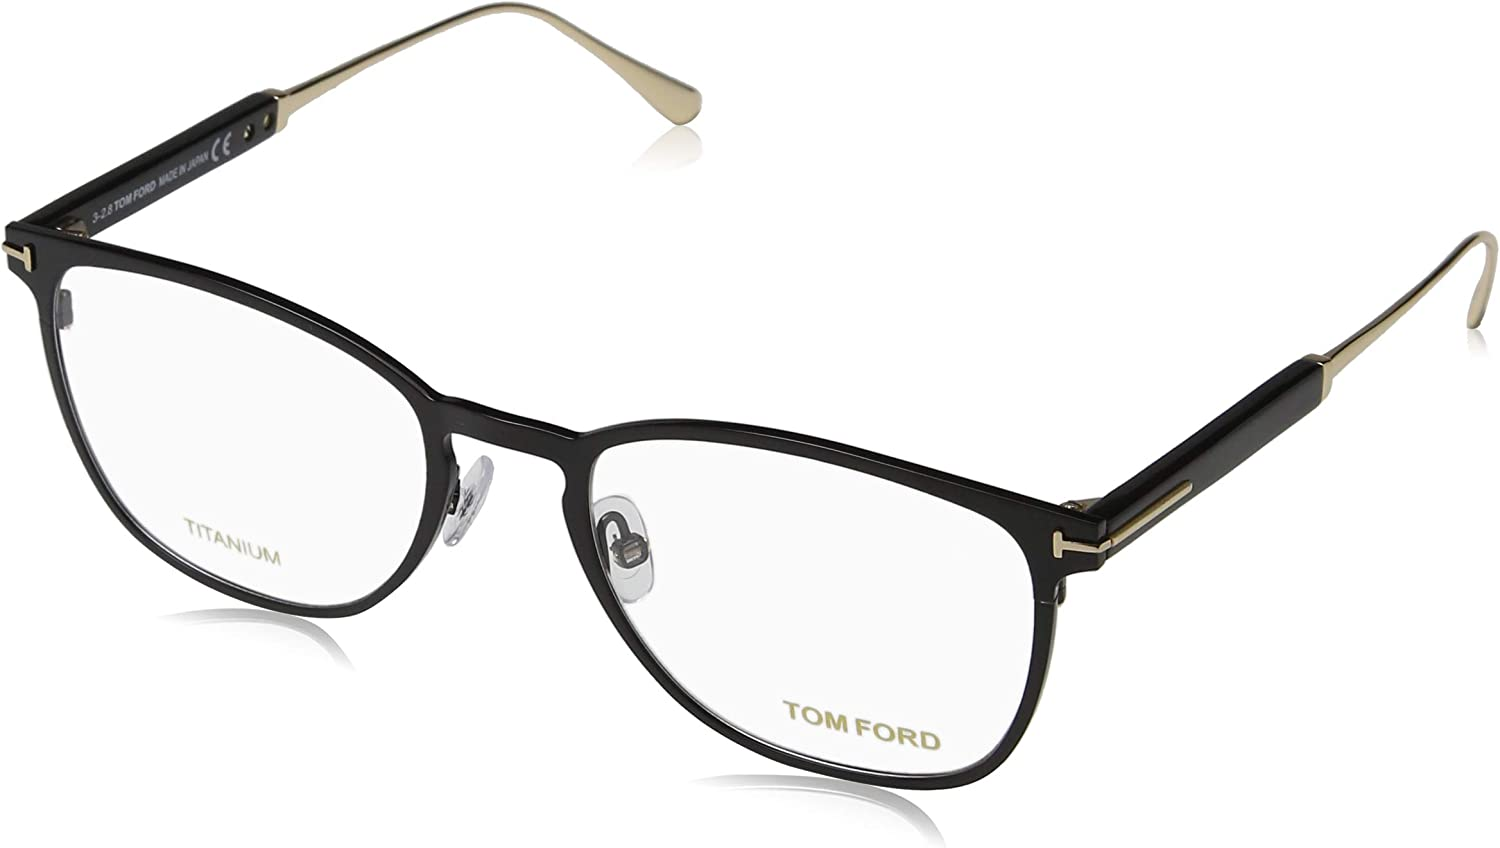 TOM FORD Eyeglasses FT5483 001 Shiny Black